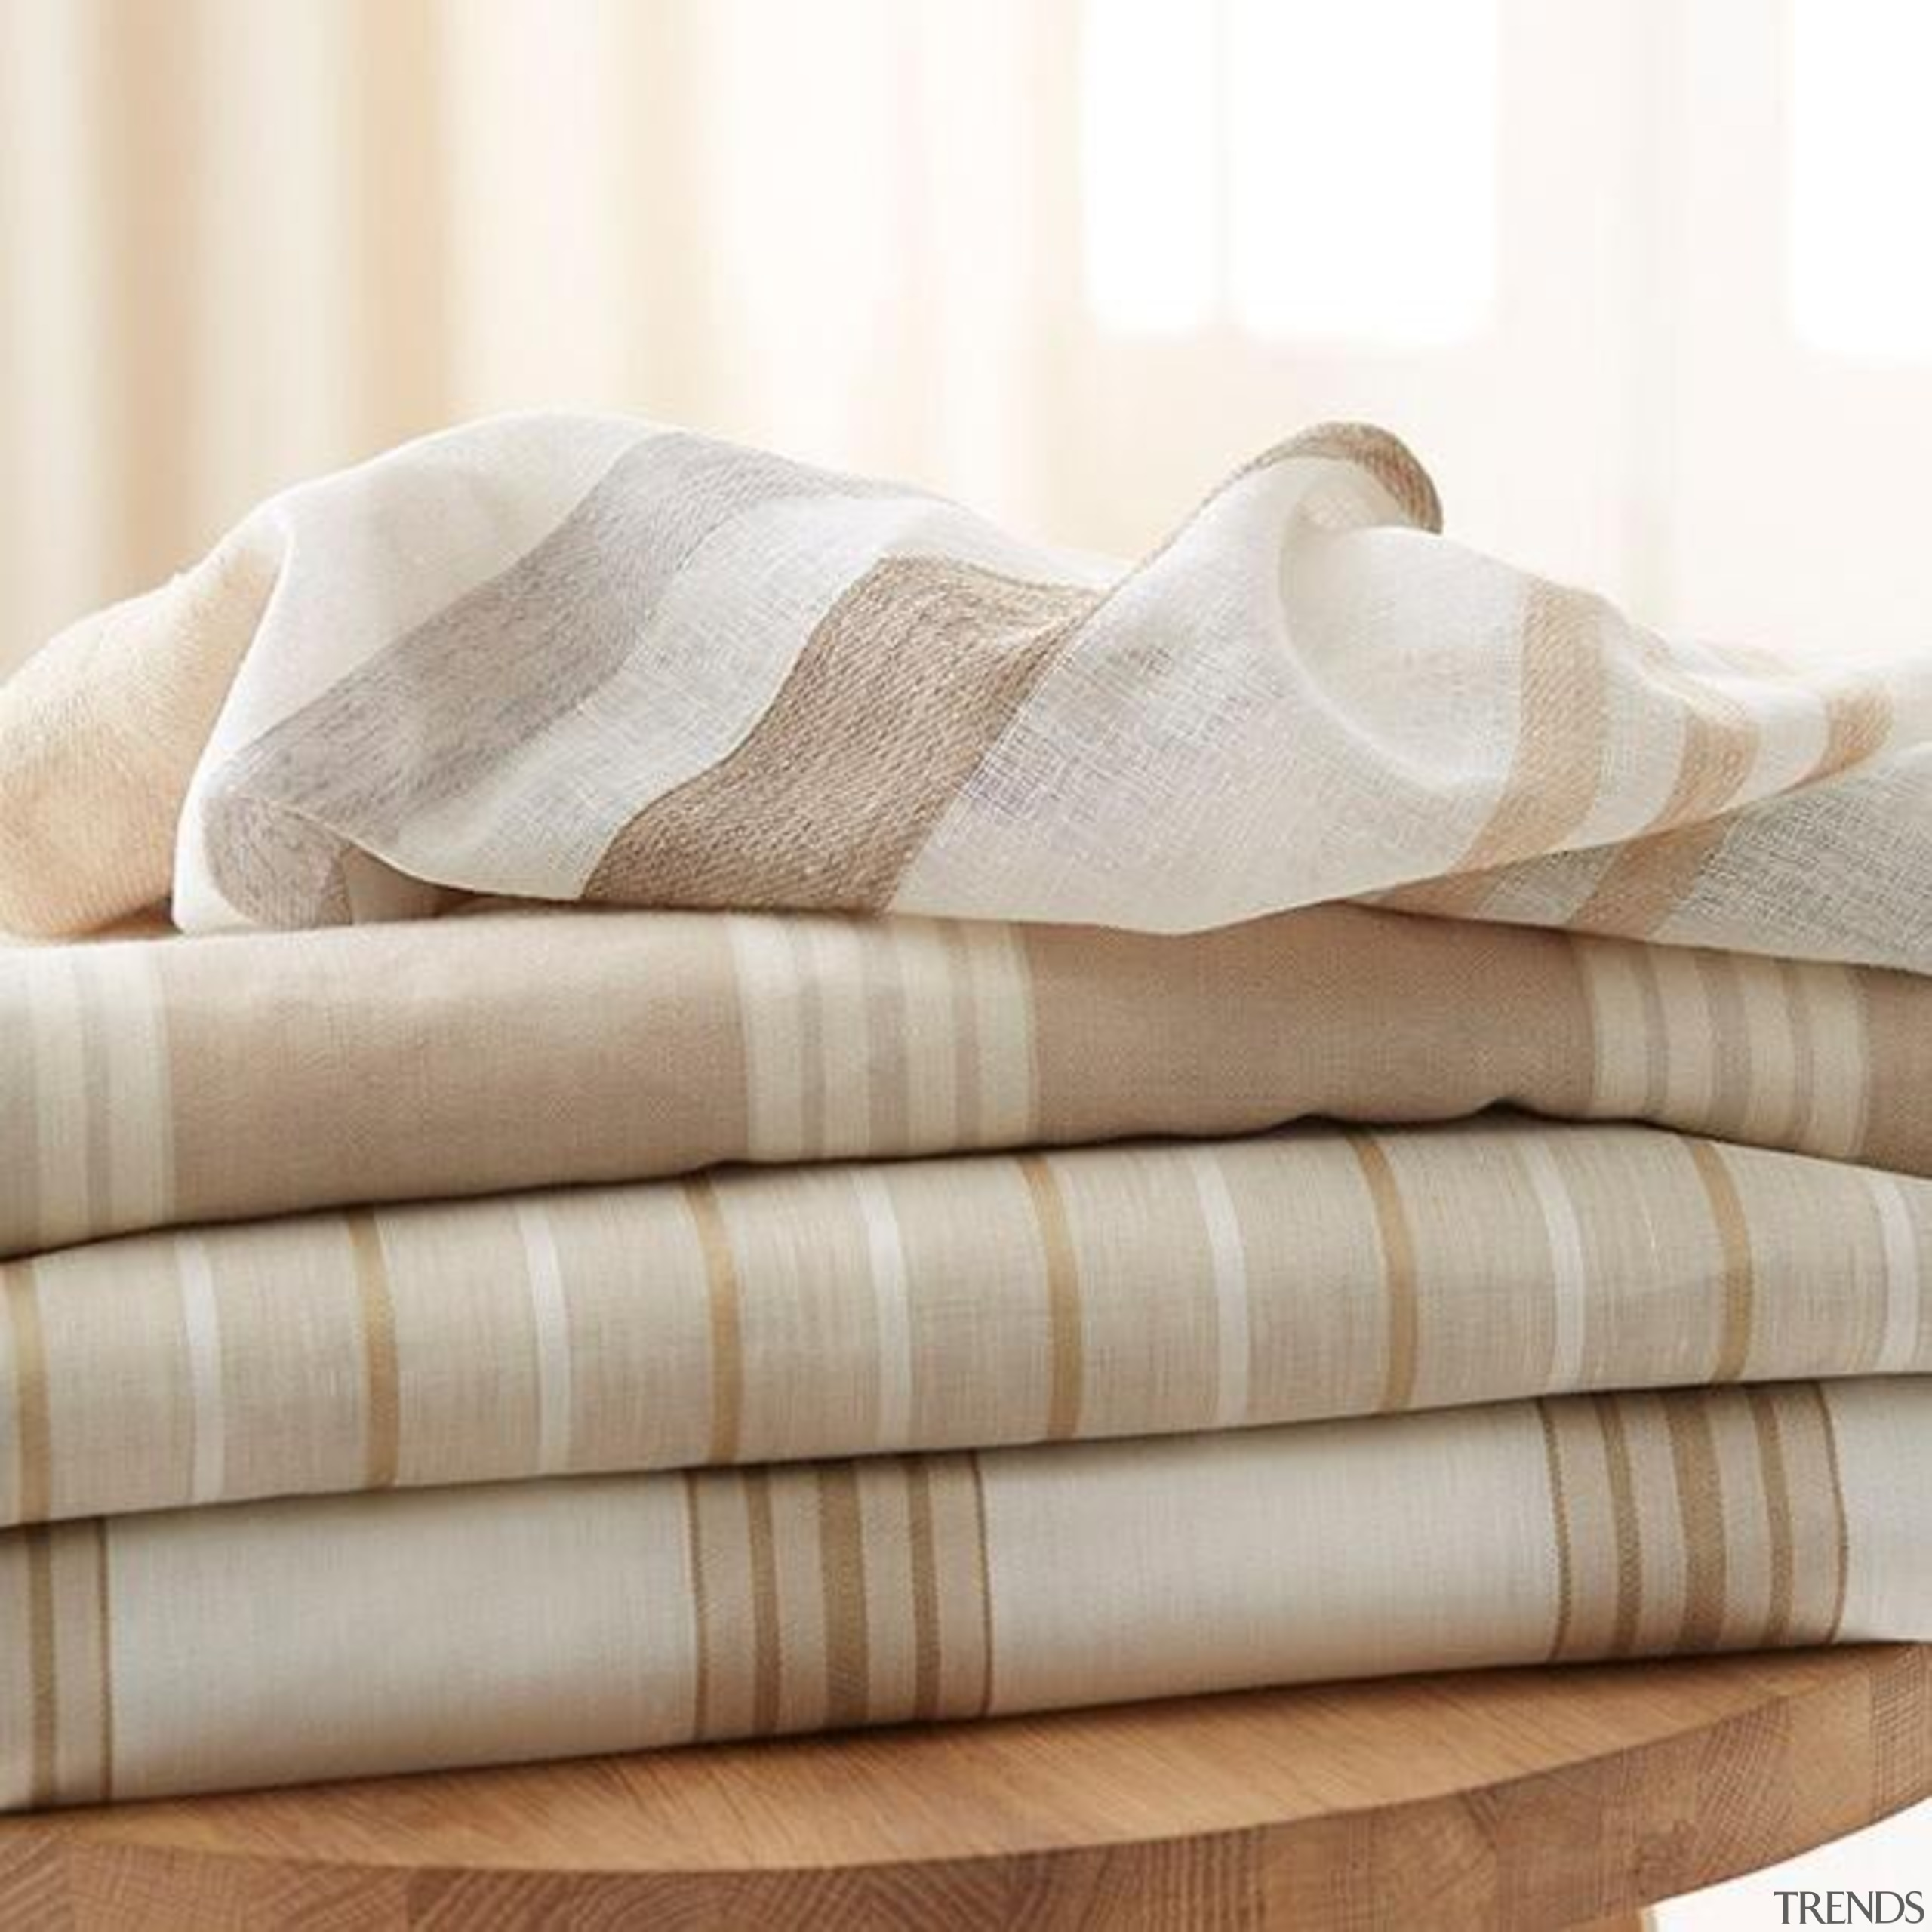 Introducing Galliot, an elegant collection